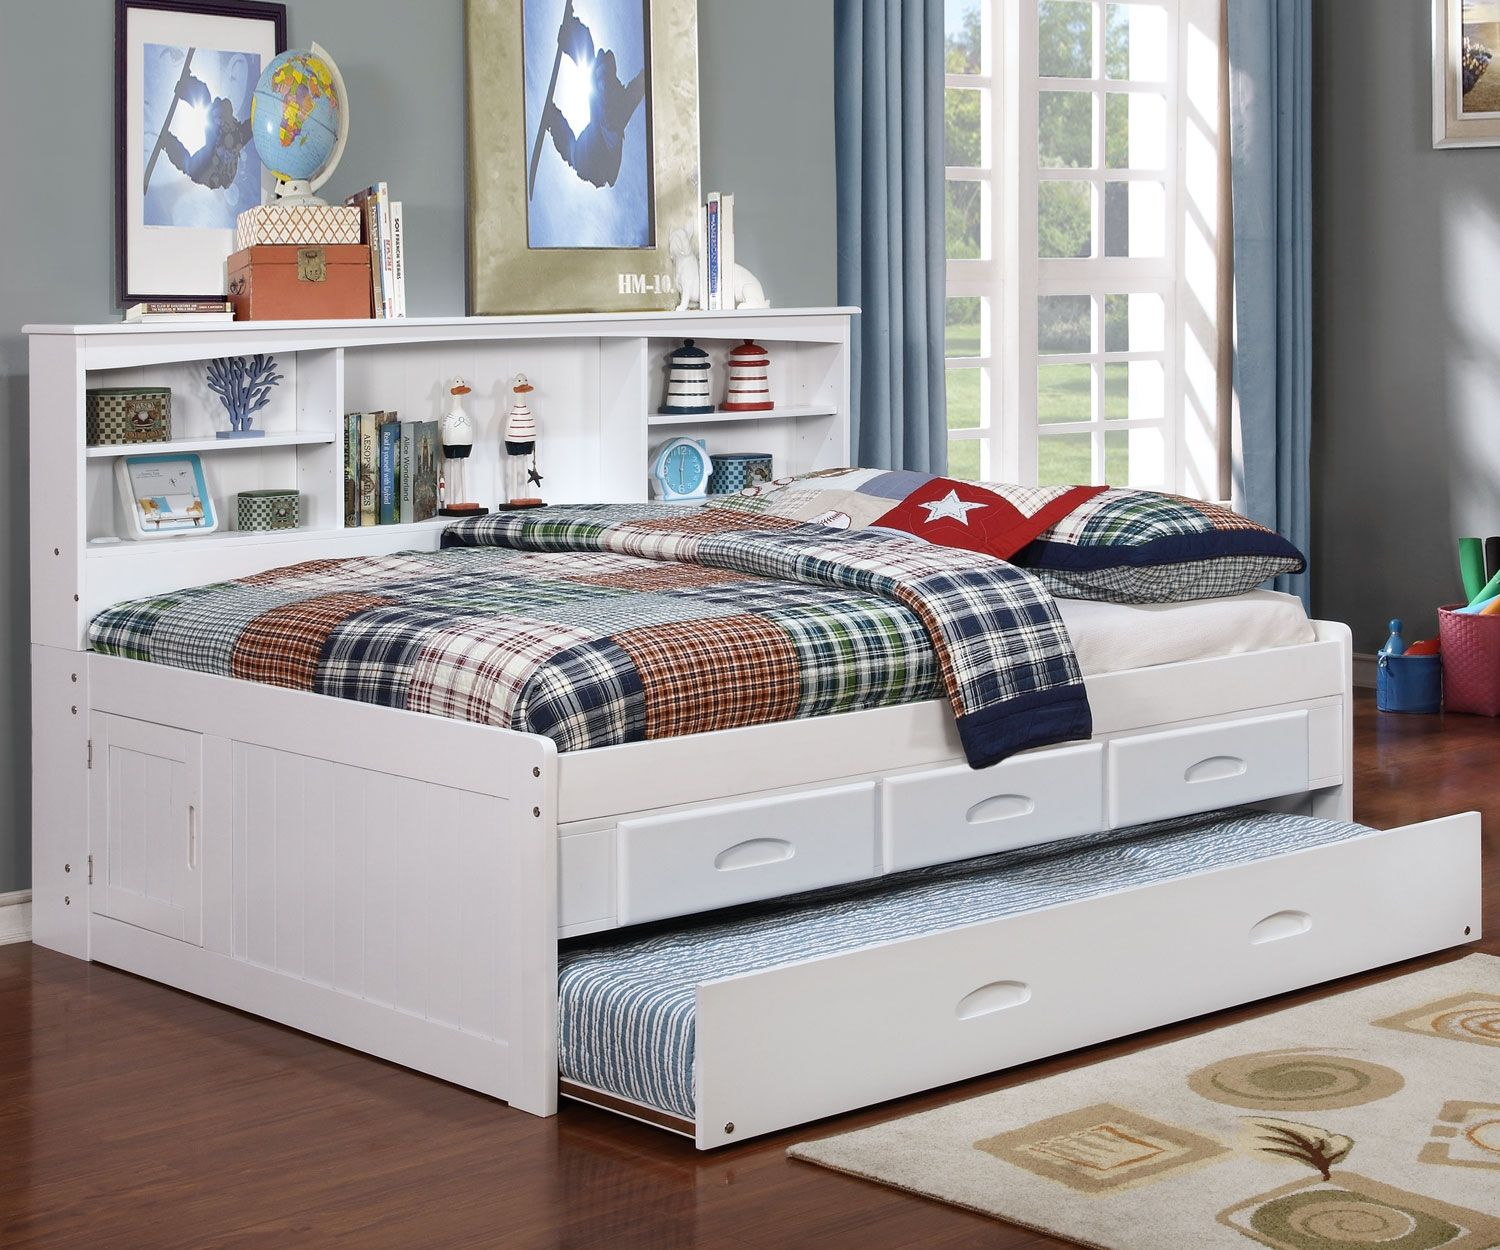 Kids Furniture White Full Size Bookcase Captain's Day Bed